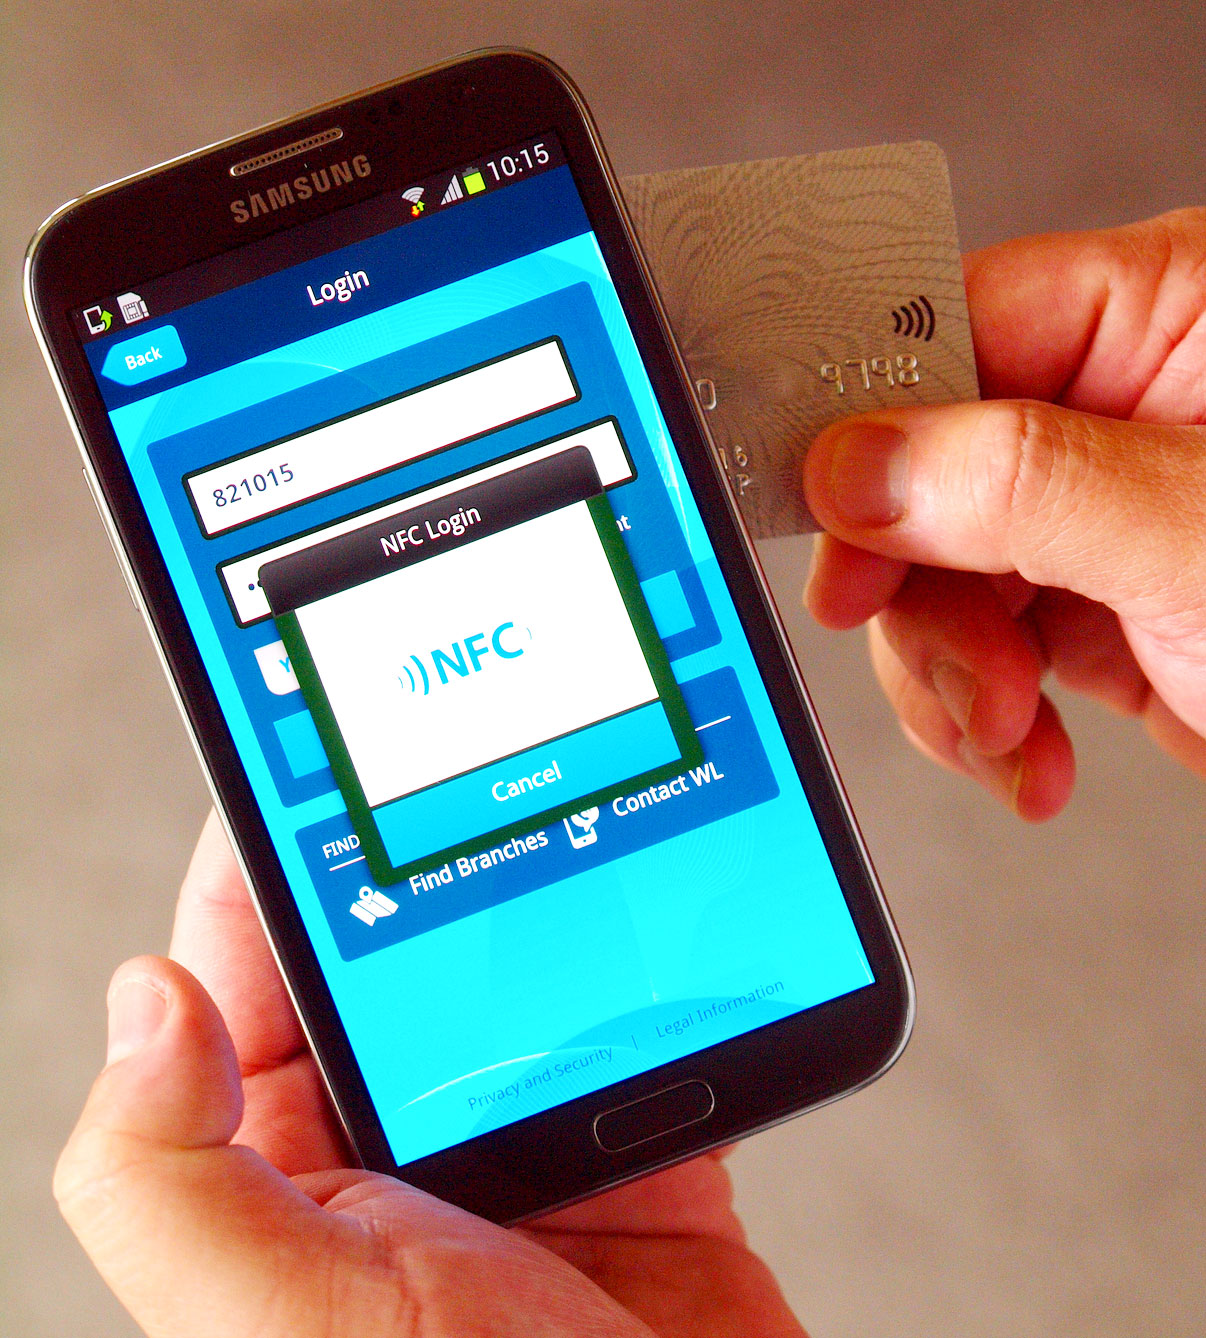 IBM's dual-factor authentication for mobile devices combines a user password with an NFC-linked card to improve login security.